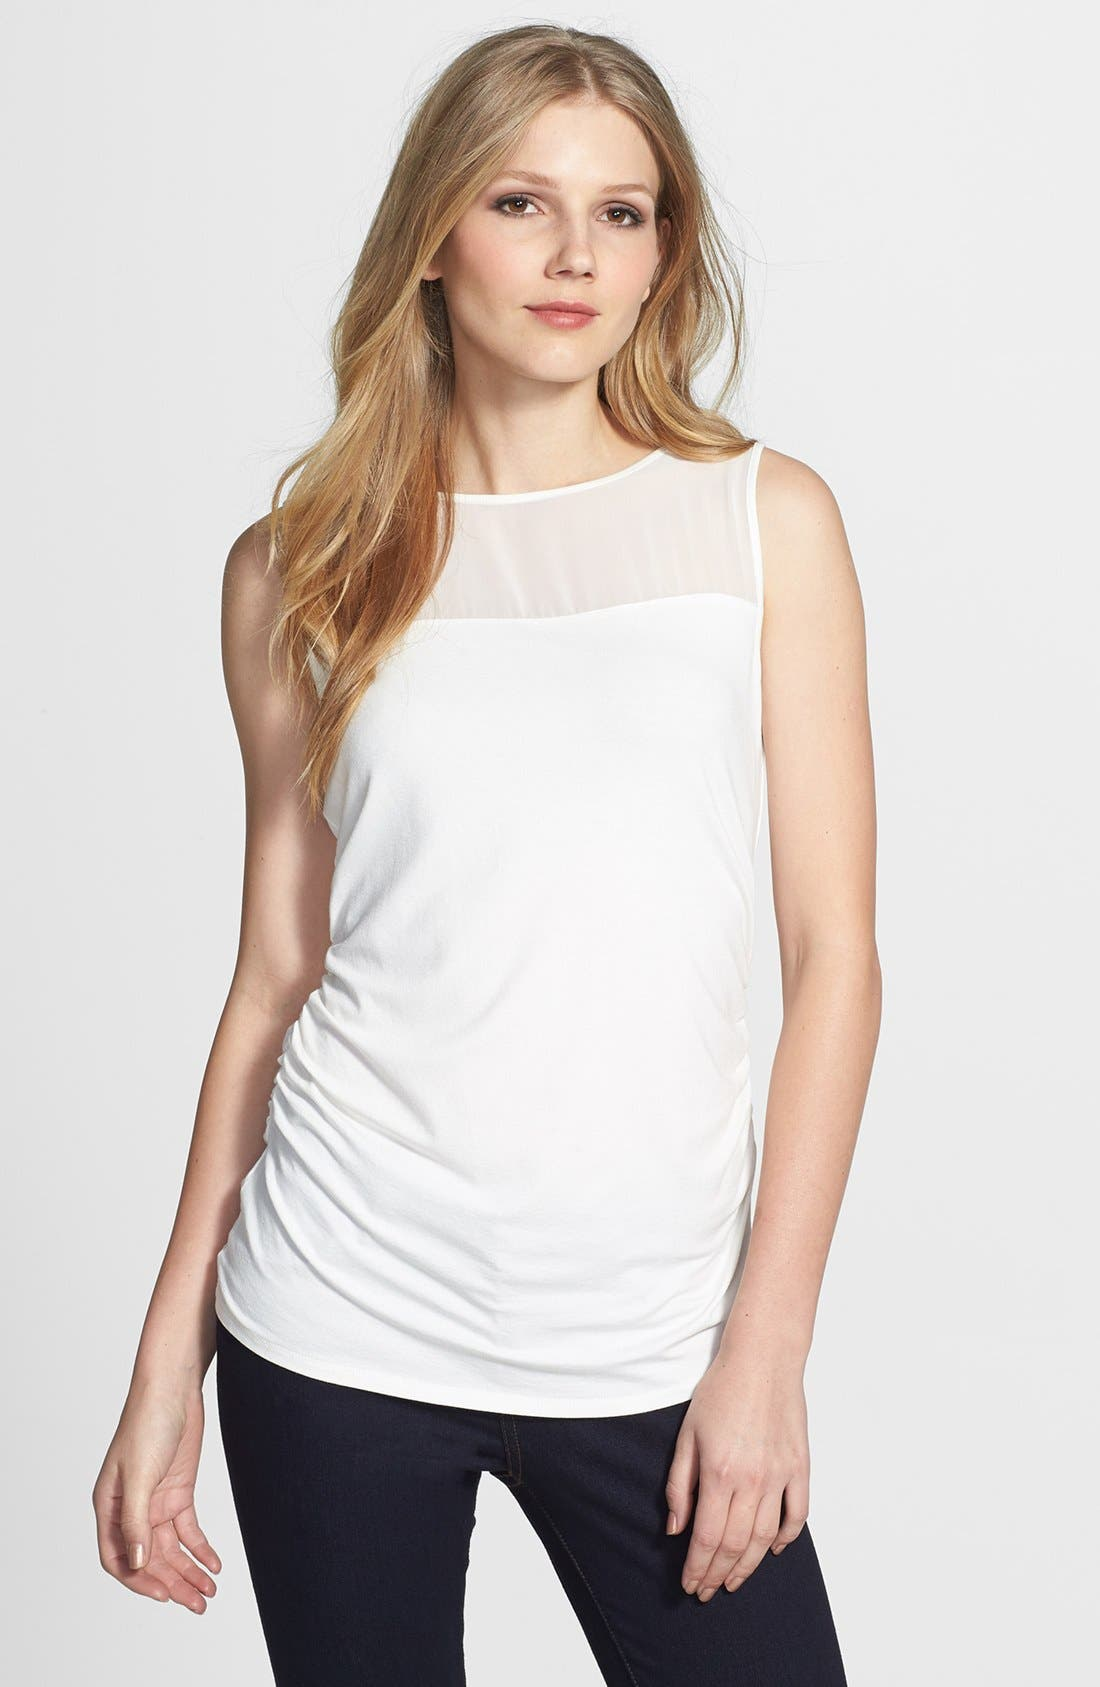 Alternate Image 1 Selected - Vince Camuto Mixed Media Sleeveless Top